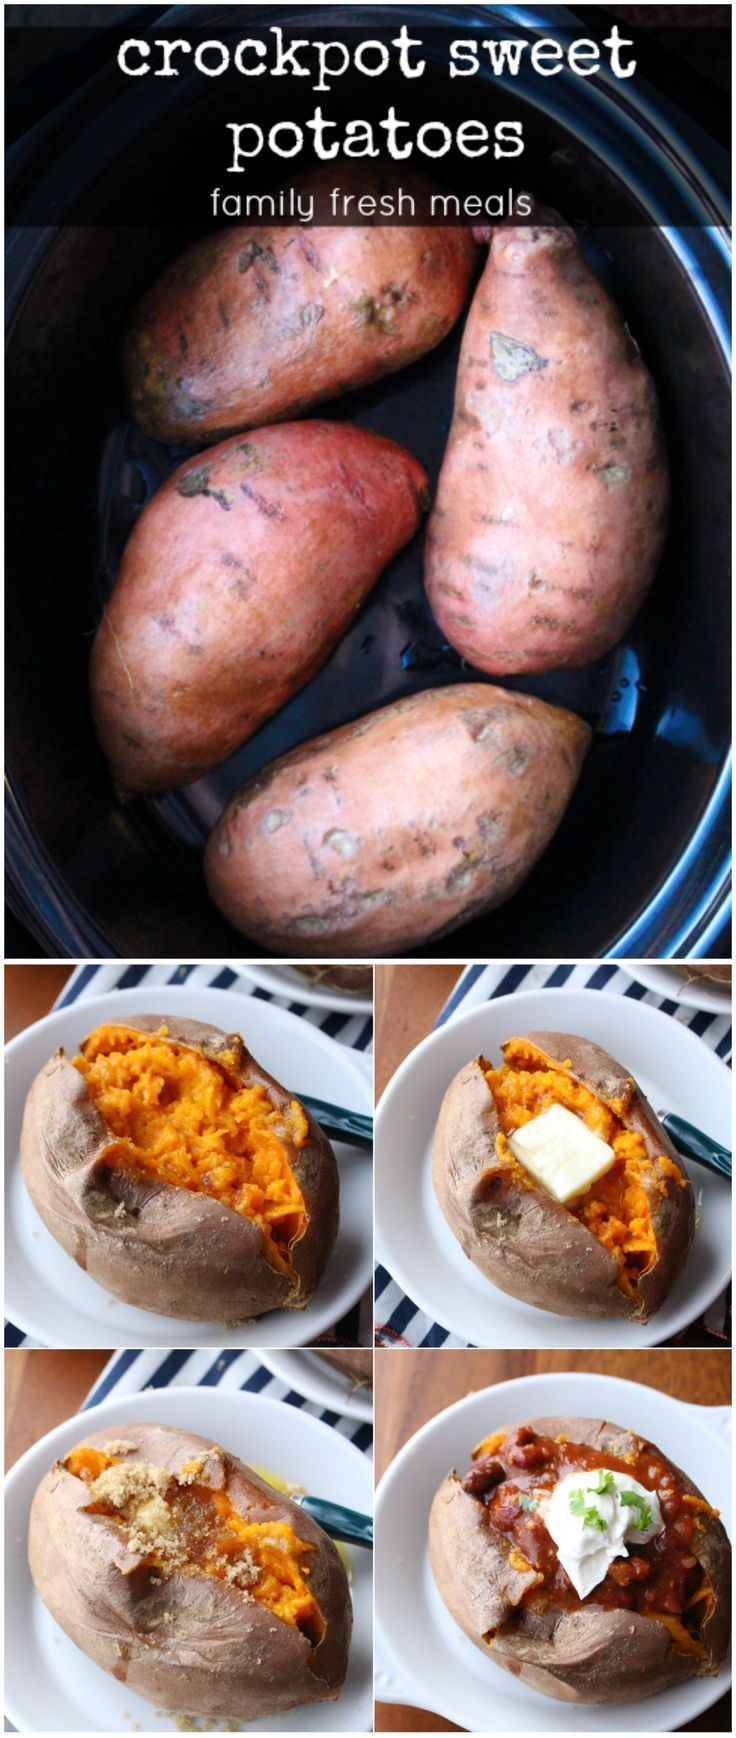 to make Crockpot Sweet Potatoes How to make Crockpot Sweet Potatoes - Lots of topping ideas! How to make Crockpot Sweet Potatoes - Lots of topping ideas!